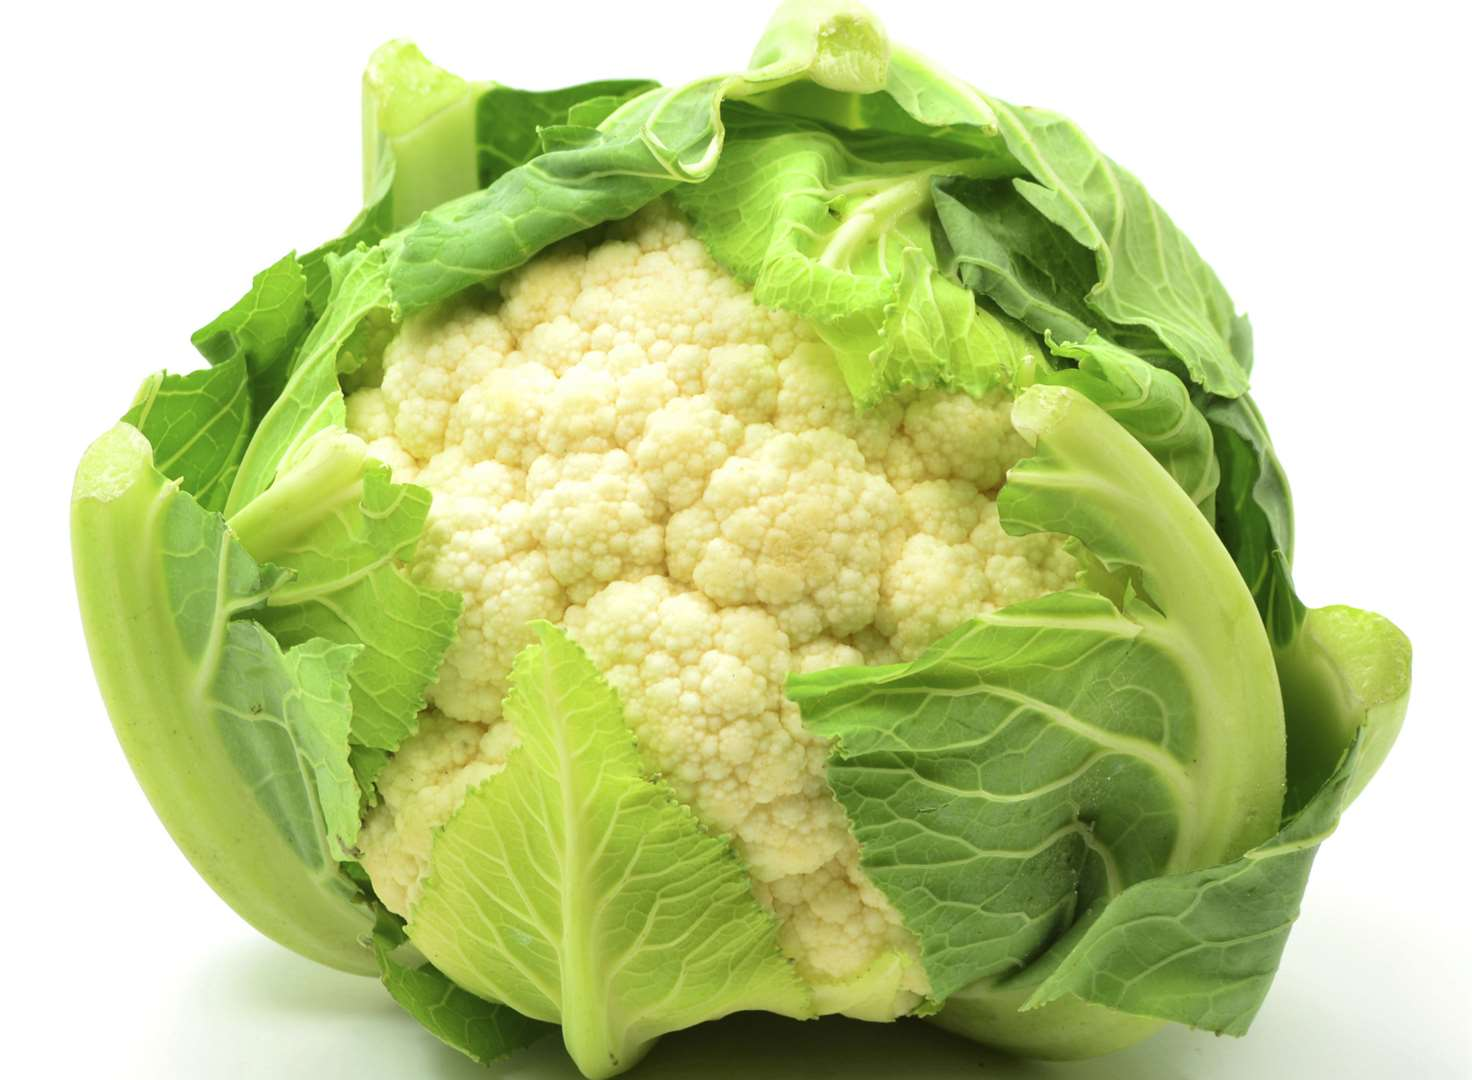 Cauliflower tears for farmers competing against foreign produce